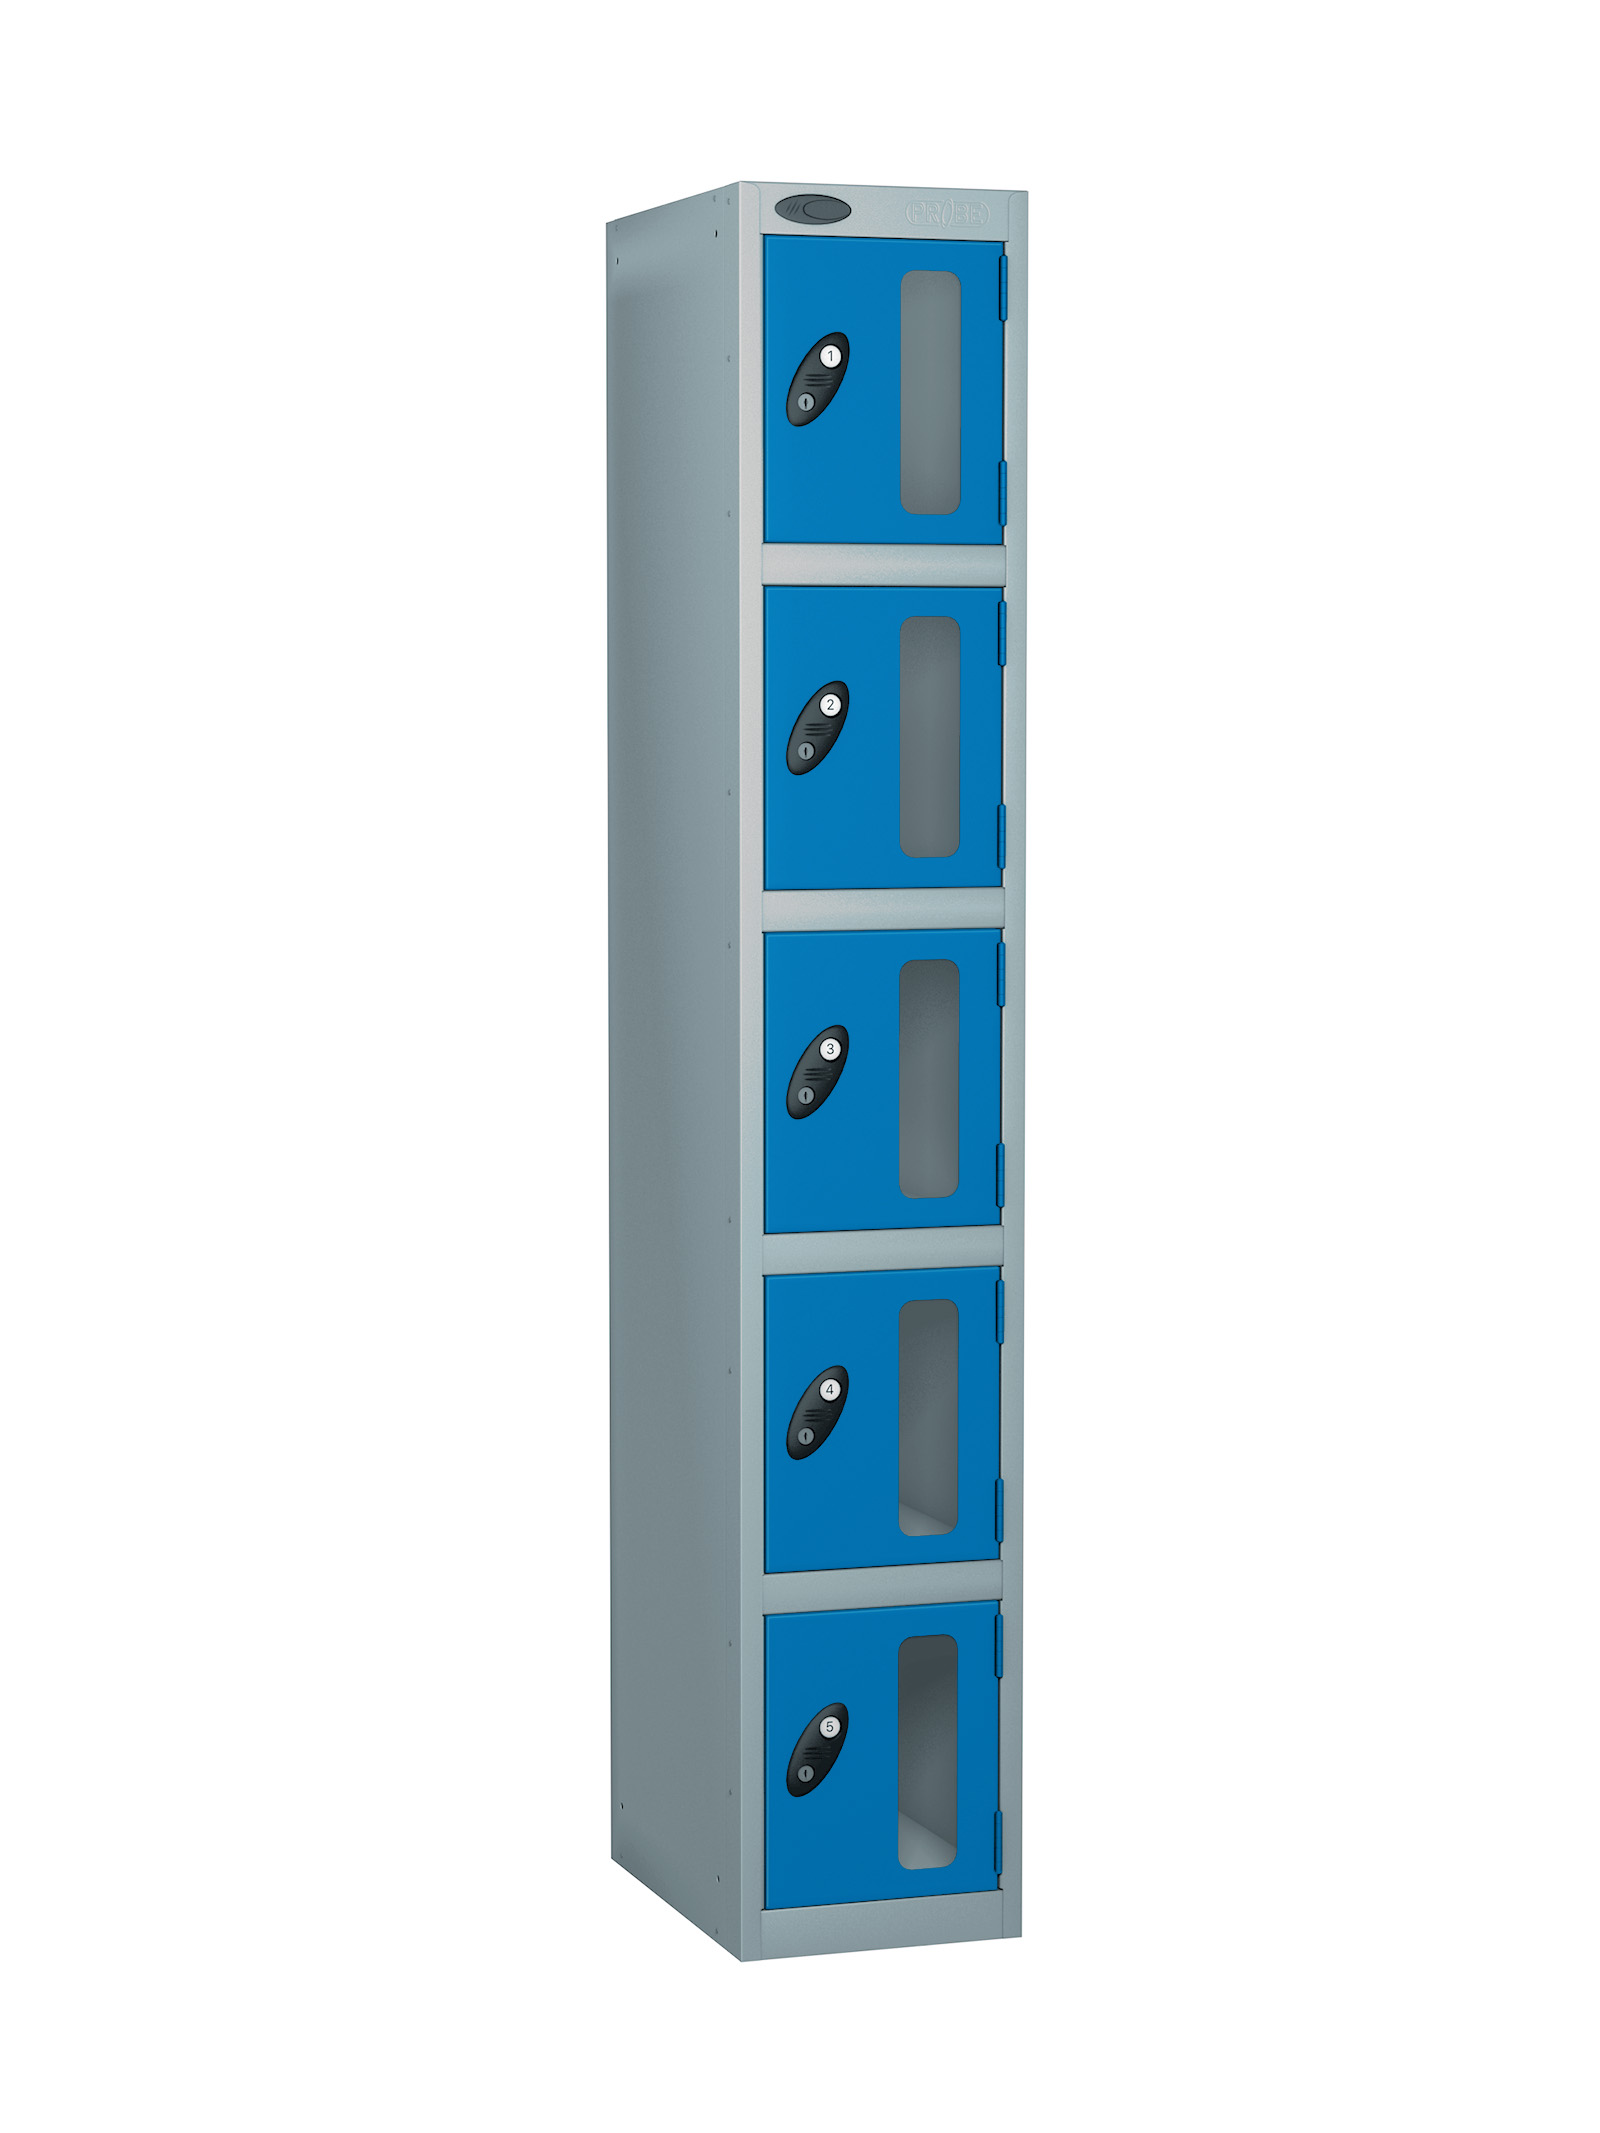 Probe 5 doors vision panel anti-stock theft locker blue